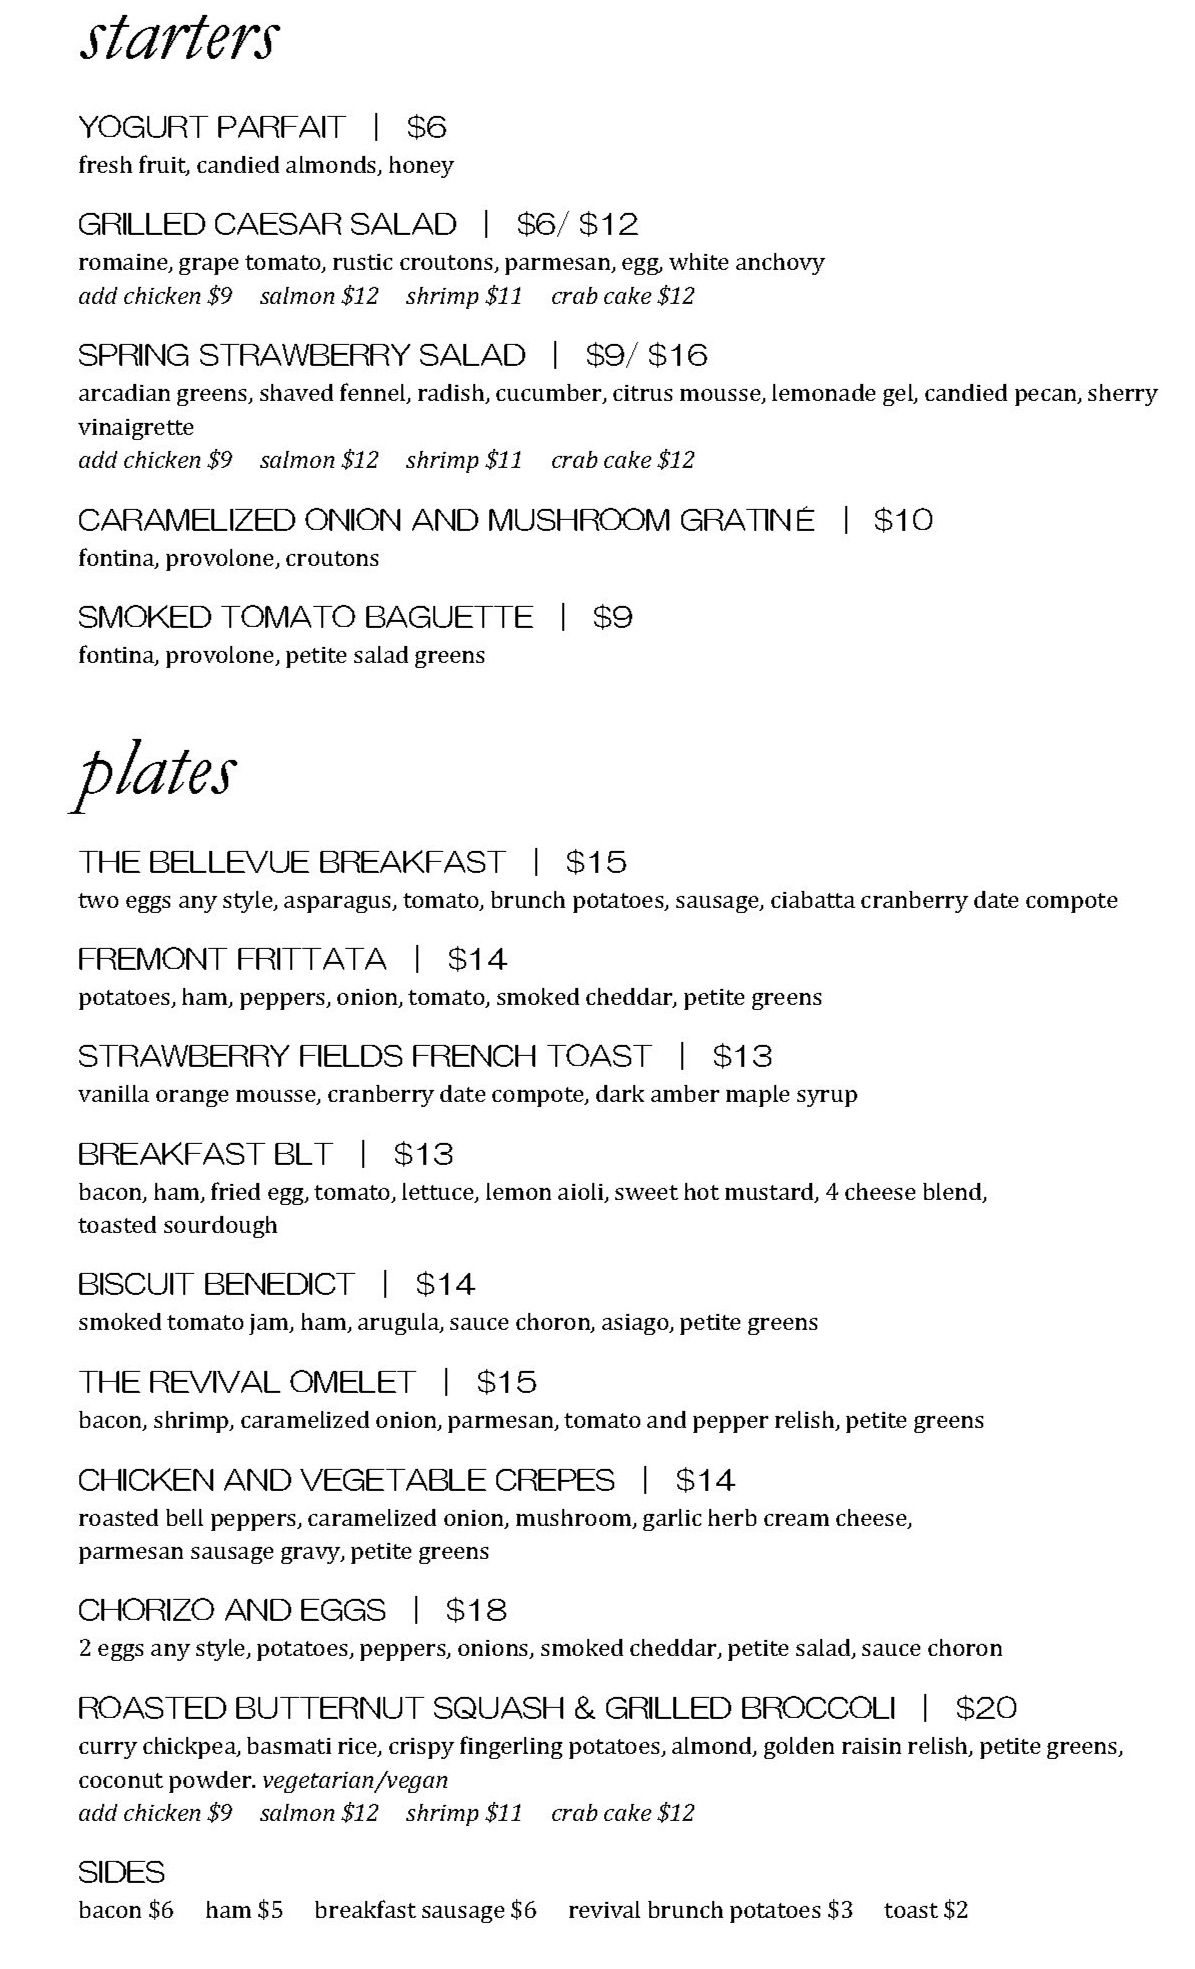 Gluten Free / Vegetarian / Vegan options   Please note this with your reservation and alert your serving staff and our culinary team can prepare a dish that will meet your dietary needs.   Menu updated June 9, 2019. Items are subject to change due to availability. Consuming raw or undercooked meats, poultry, seafood, shellfish or eggs may lead to foodborne illness, especially if you have a medical condition.